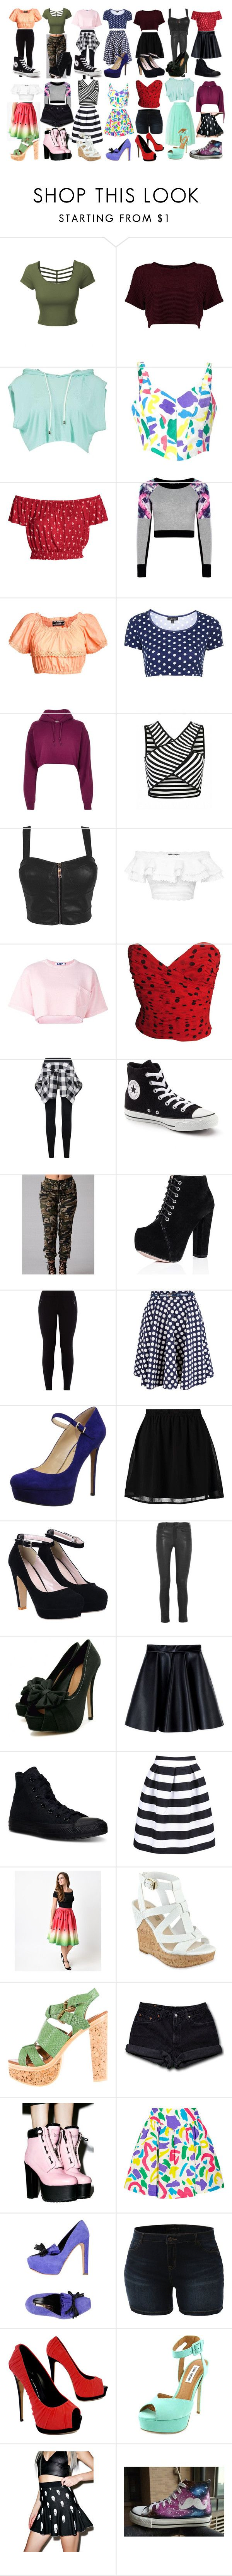 """""""Outfit Ideas"""" by brigesino on Polyvore featuring LE3NO, Moschino, Pilot, Topshop, River Island, Alexander McQueen, Steve J & Yoni P, Converse, New Look and Closet"""